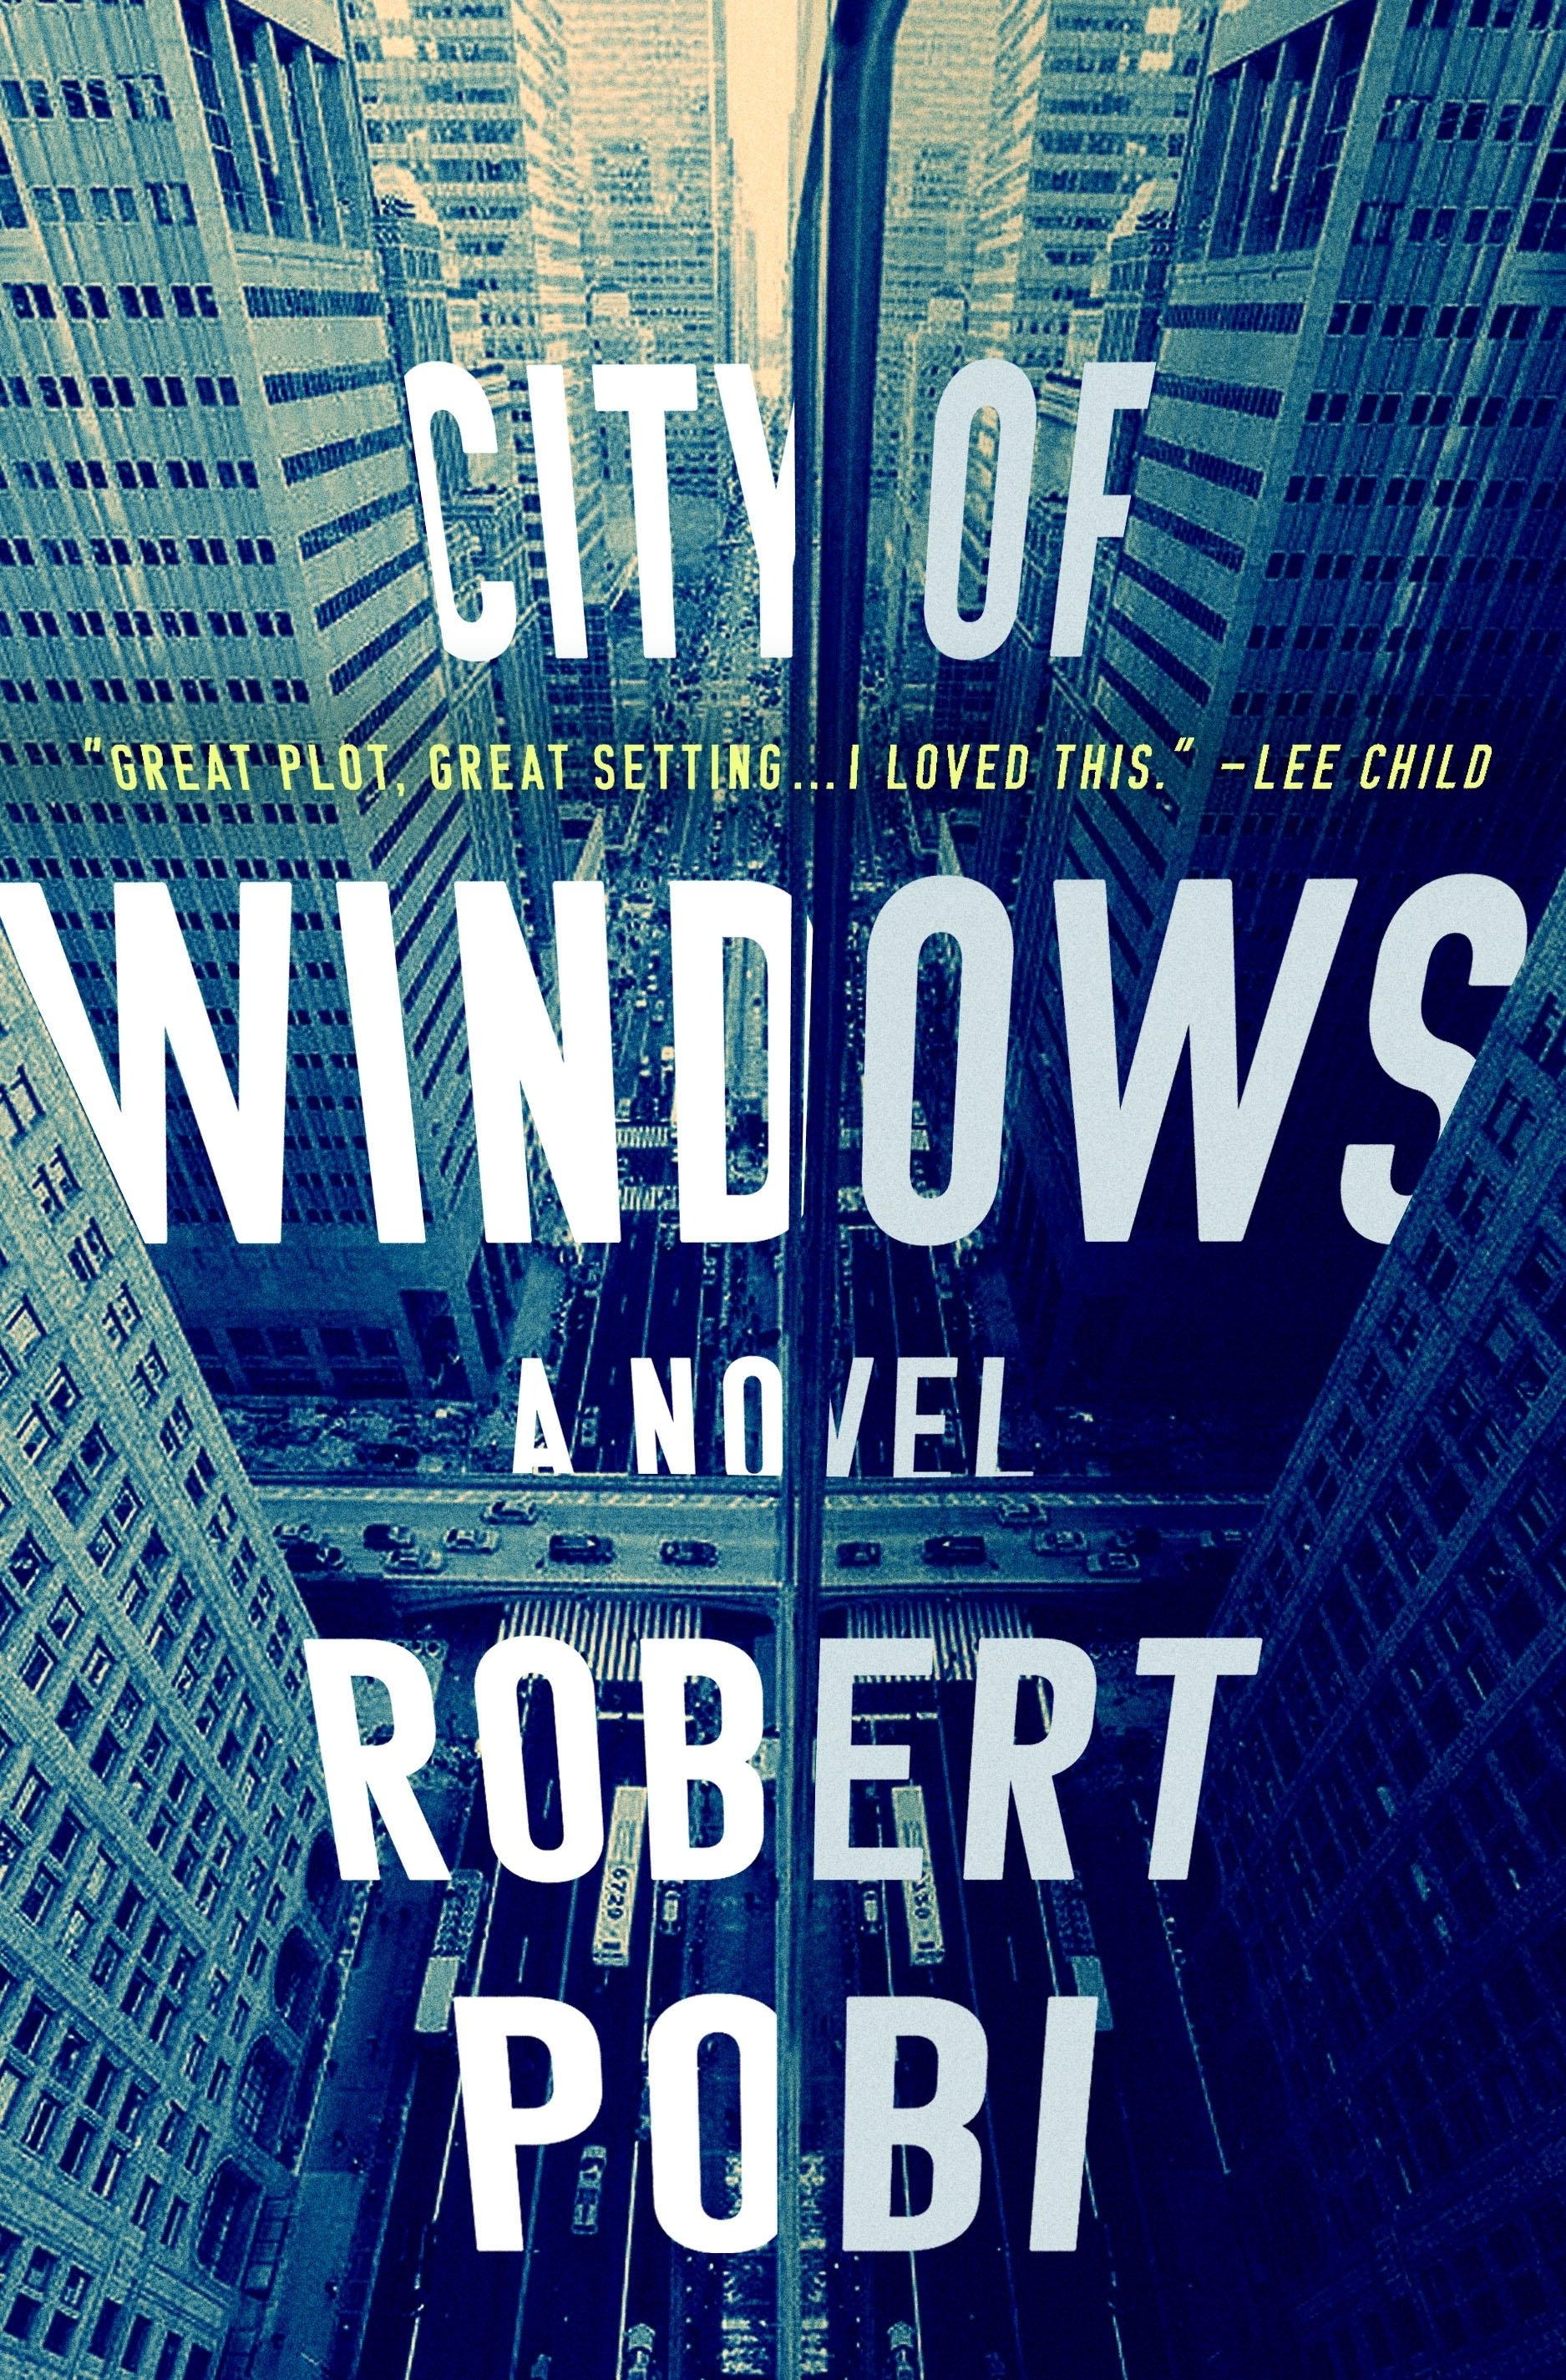 'City of Windows' is compelling and baffling thriller